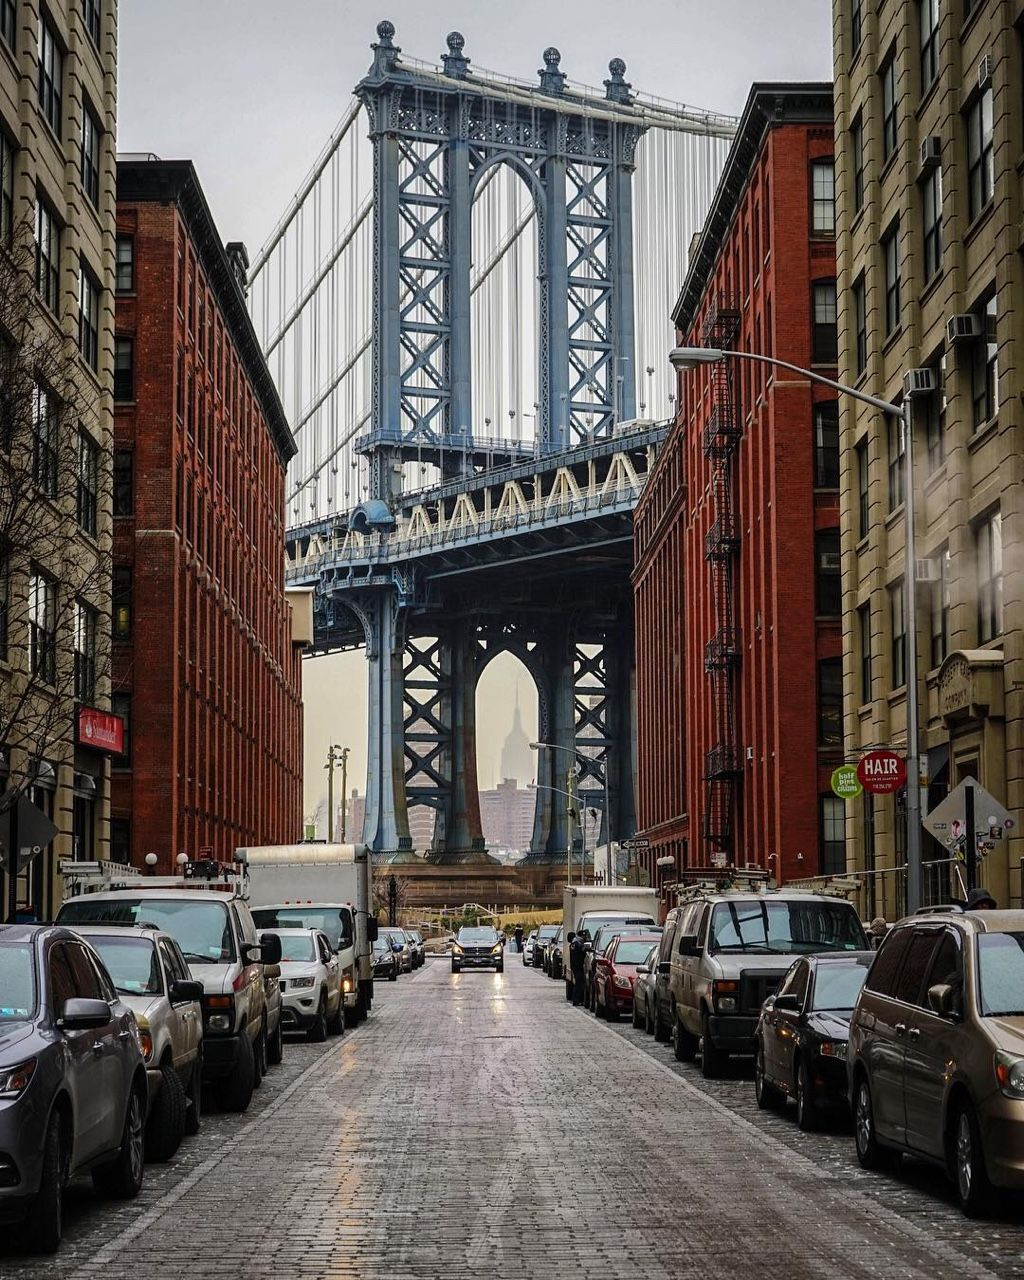 Journal Foto And Wallpaper Building: Washington Street, DUMBO, Brooklyn By Bridget_pz In 2019